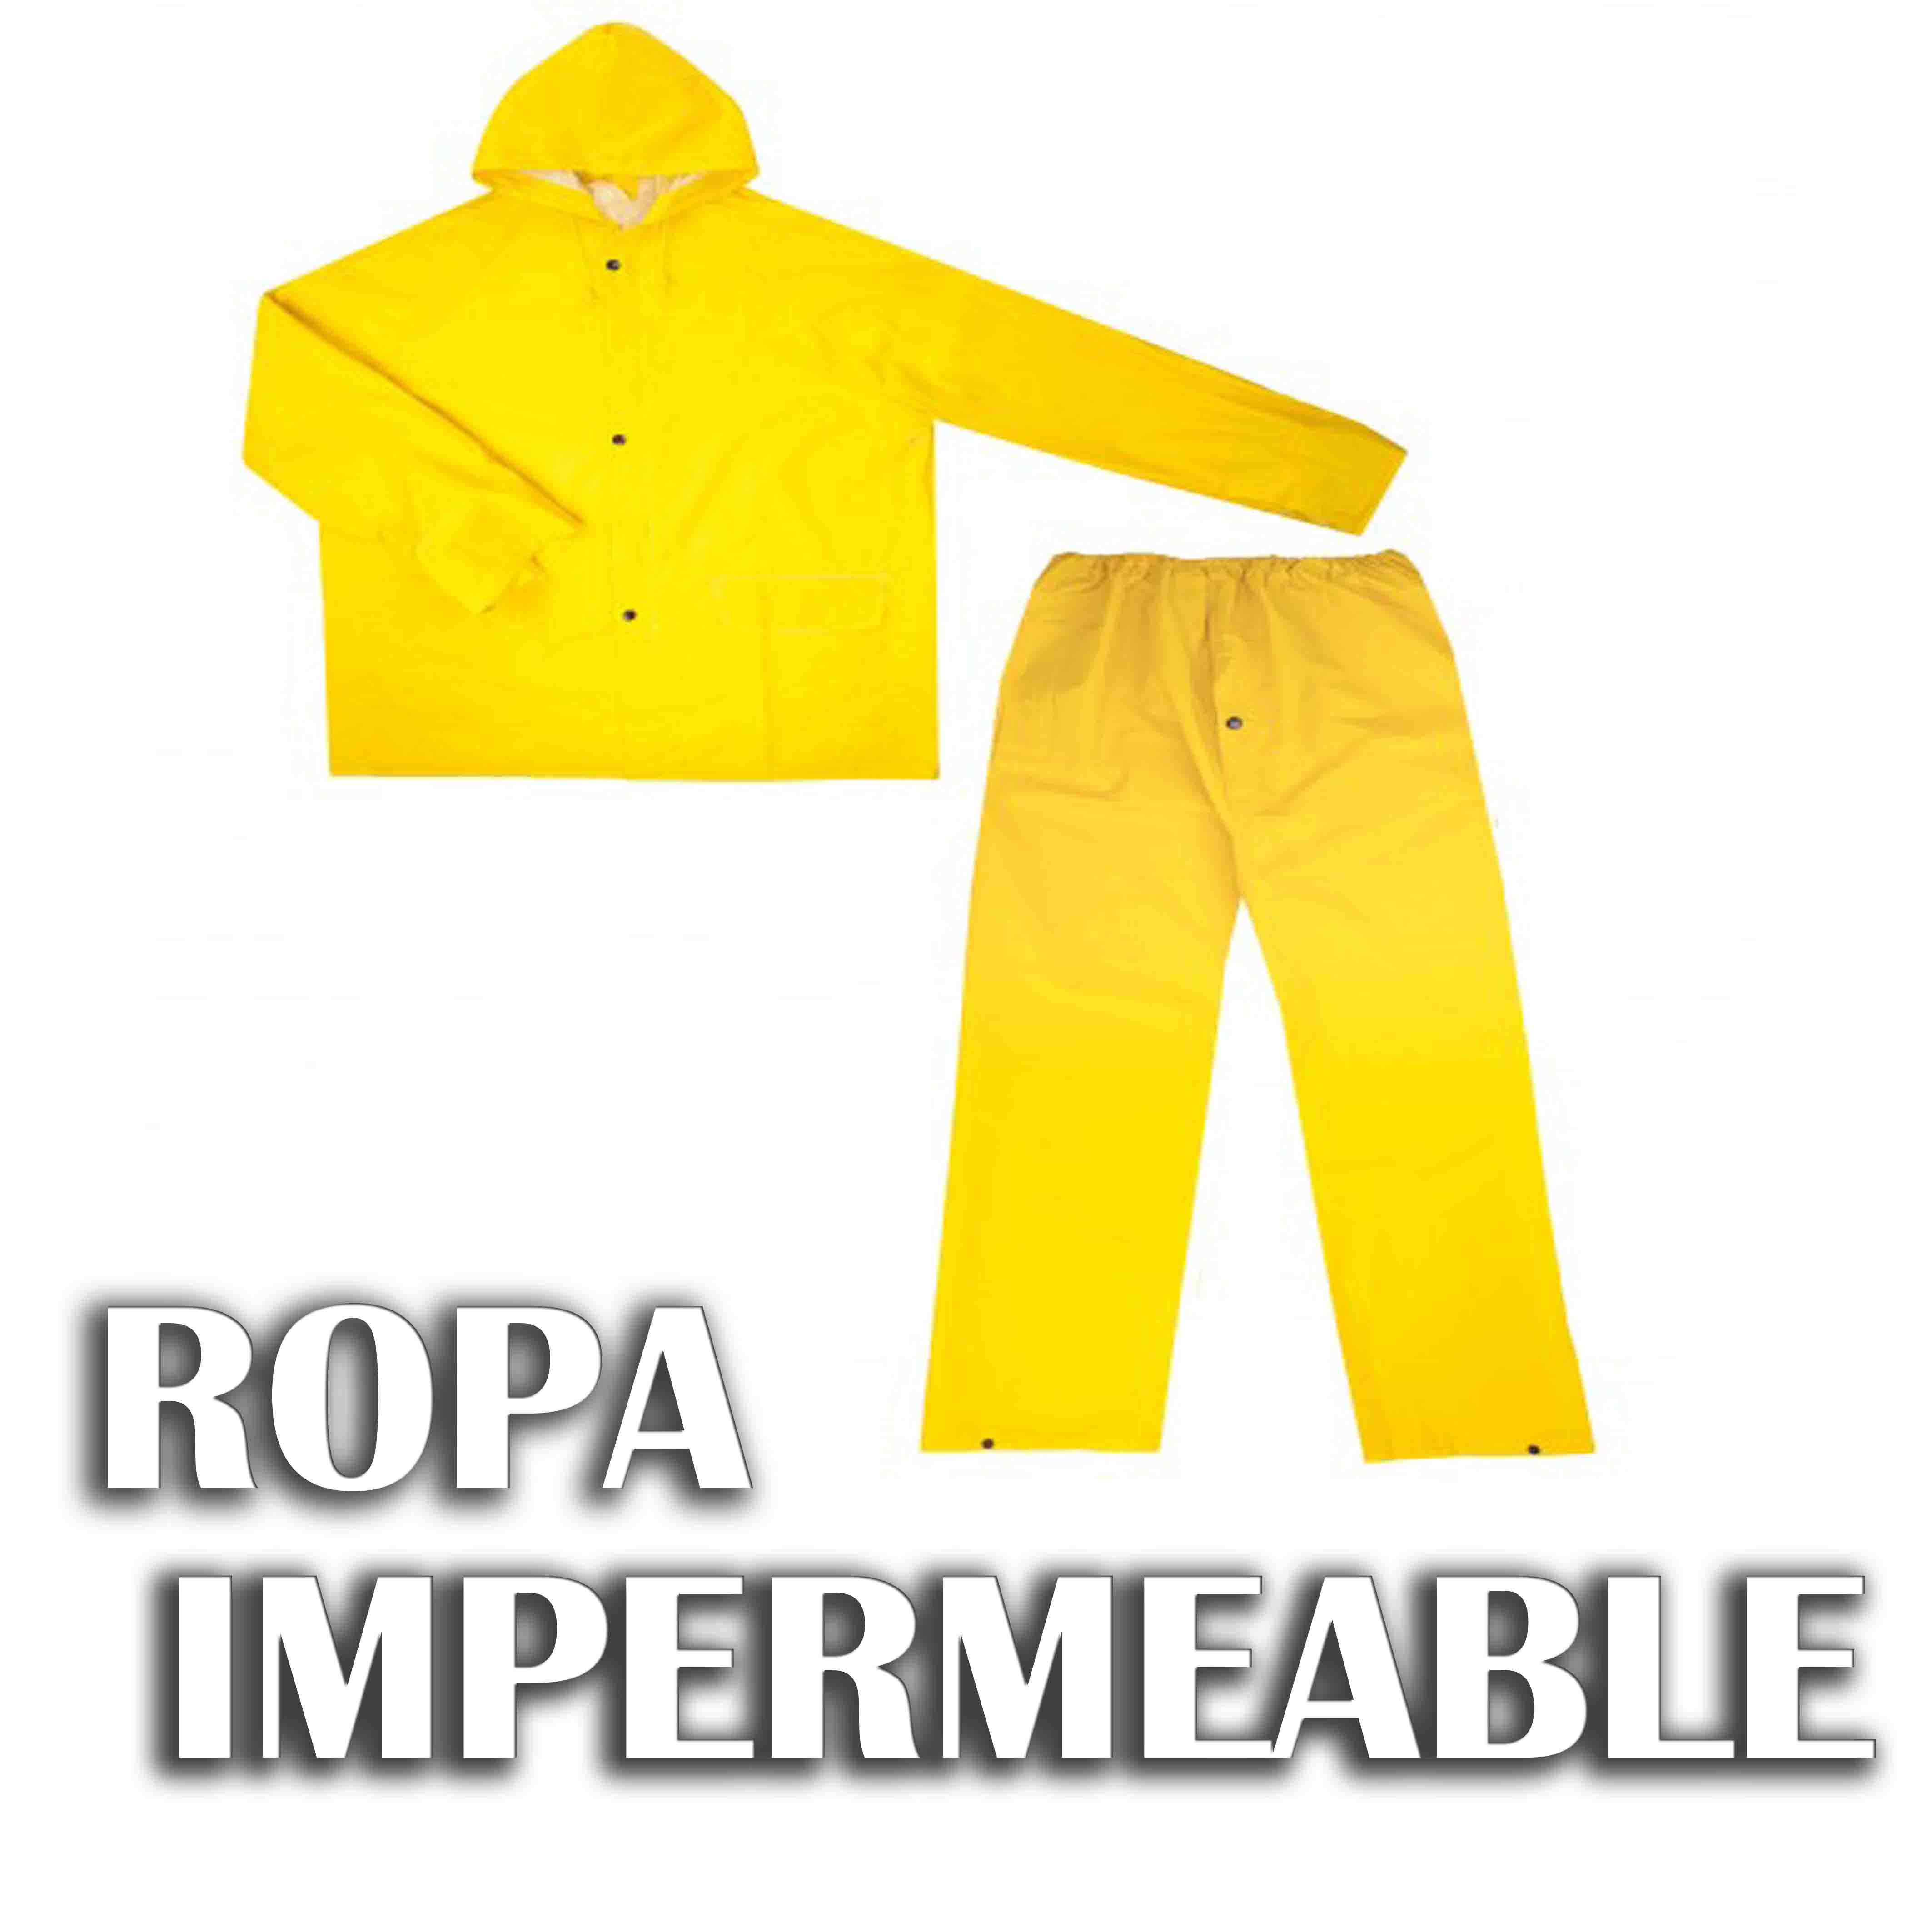 ROPA_IMPERMEABLE